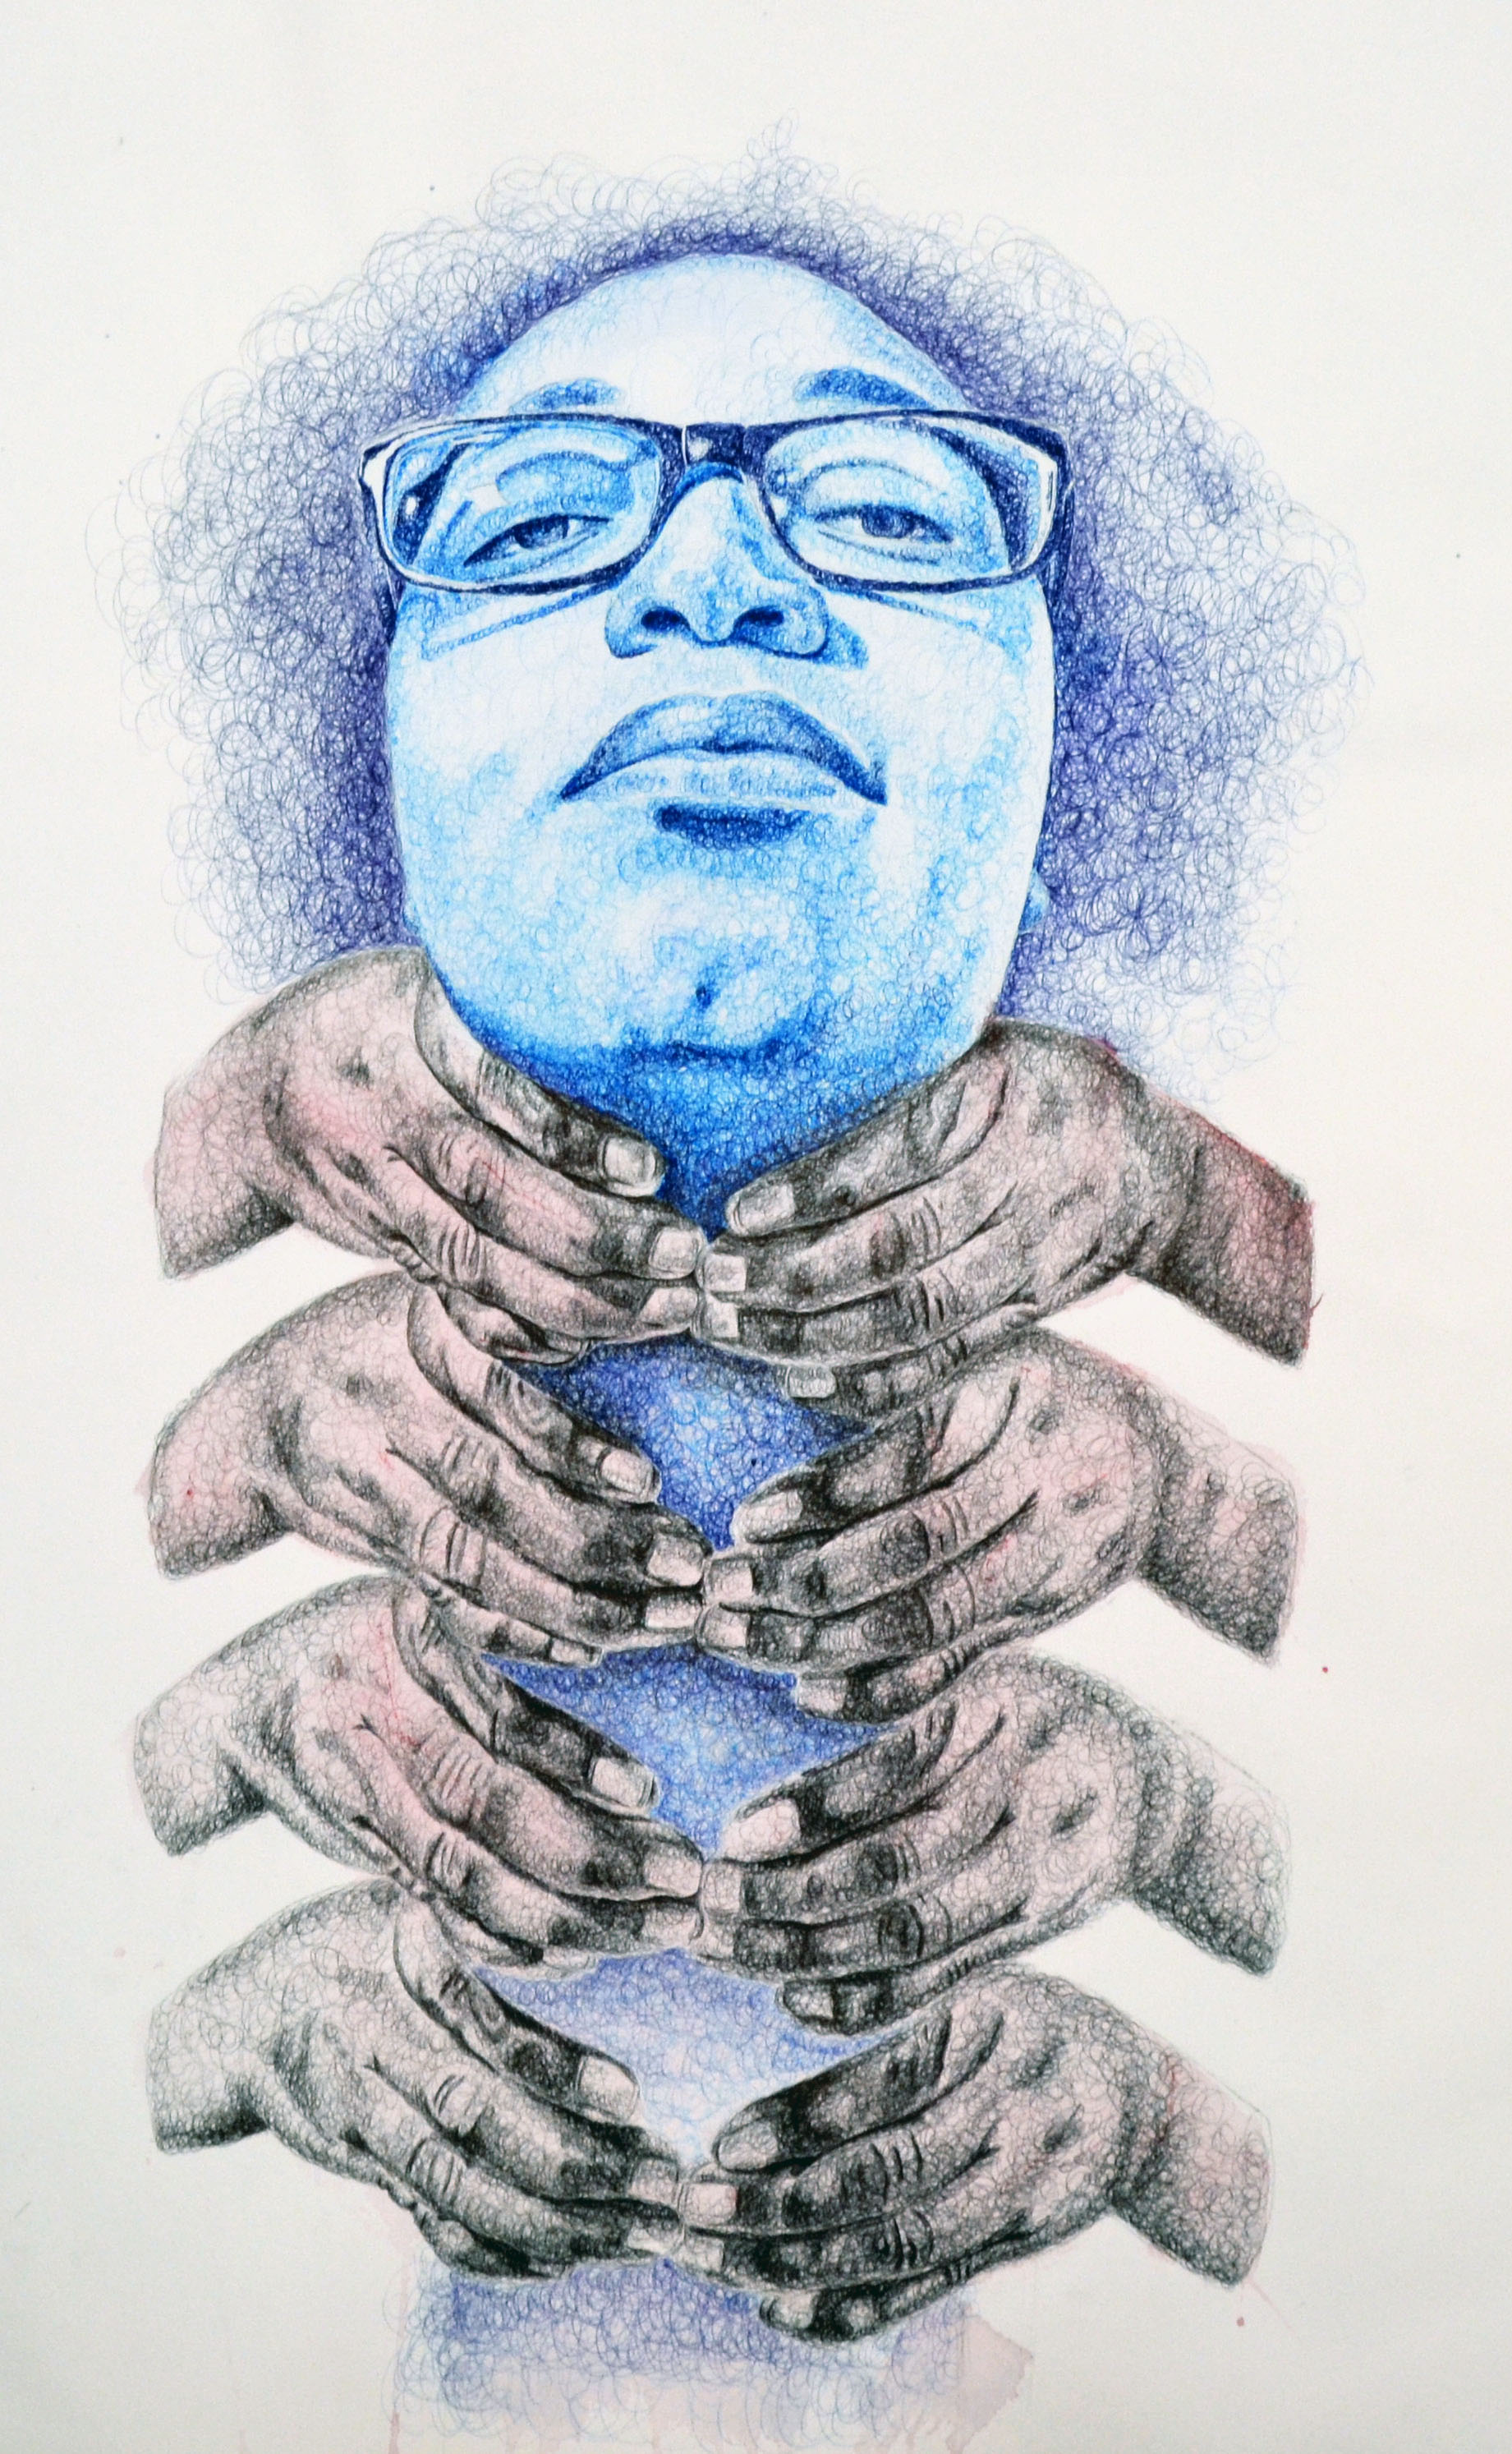 We Can't Breathe #1  Ballpoint Pen, Gouache, and Colored Pencil  22'' x 30''  2016